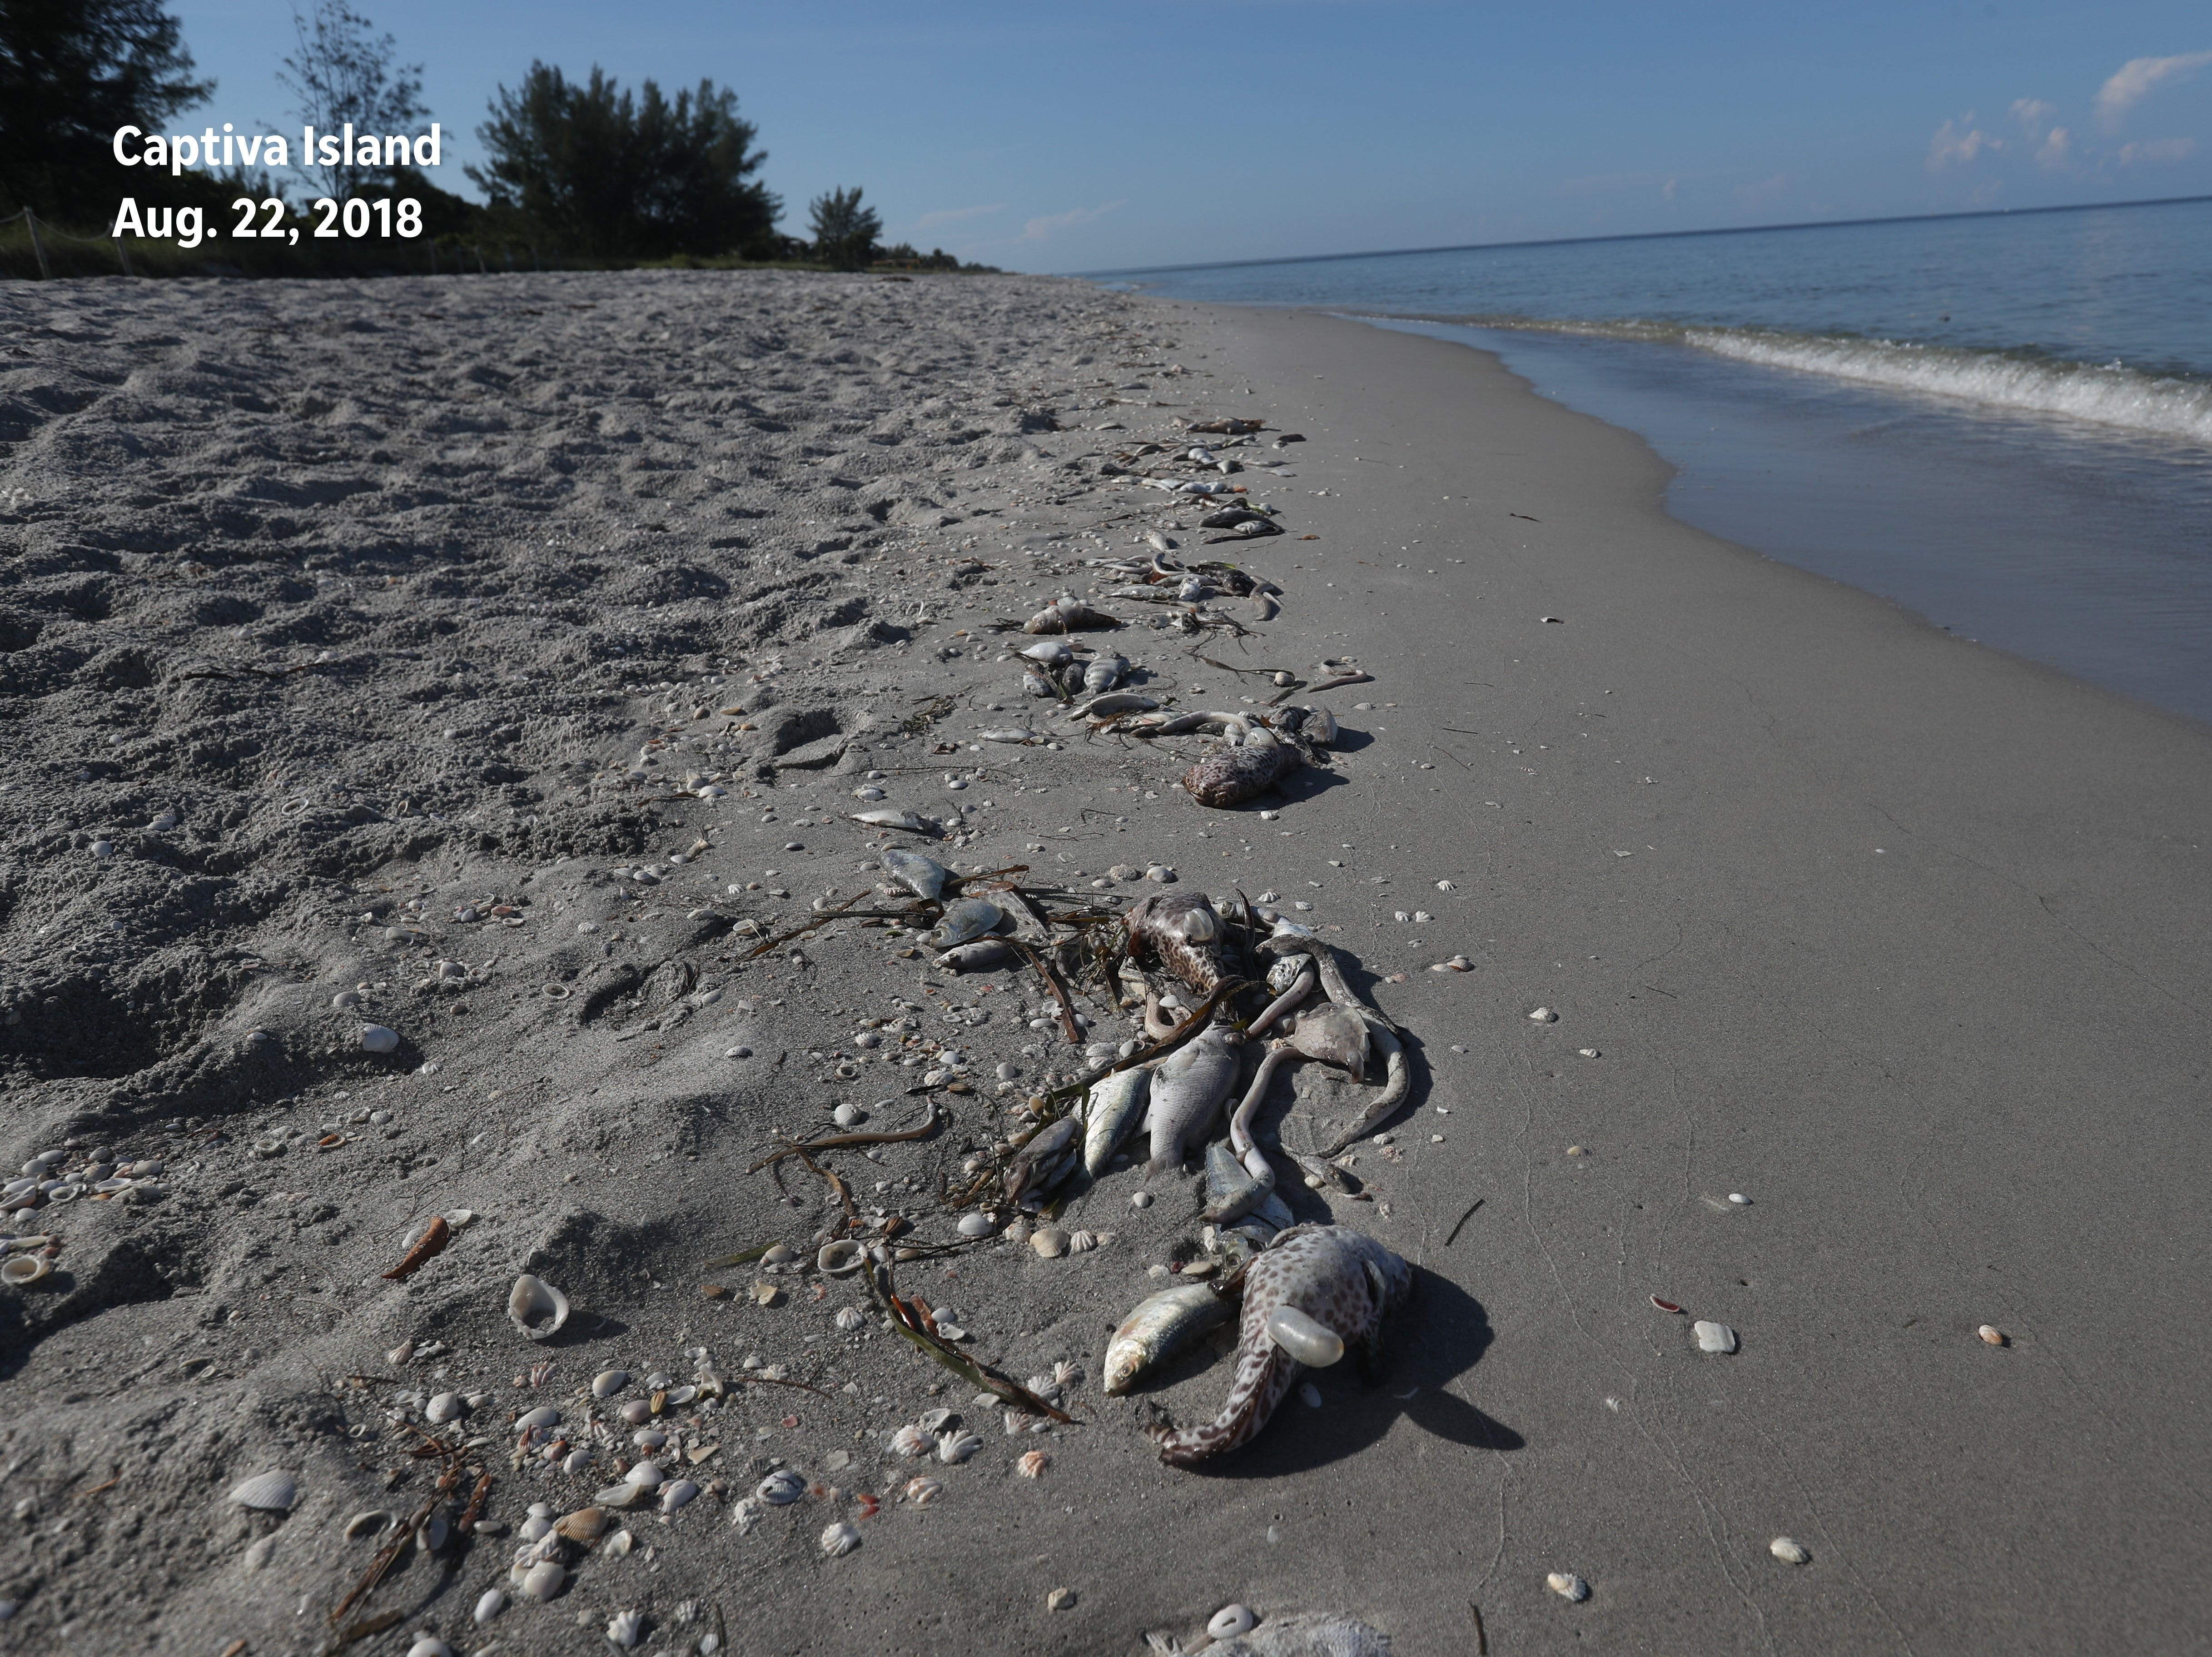 Before: A fish kill was documented at the last public beach access on Captiva Island before the South Seas Resort on Aug. 22, 2018.